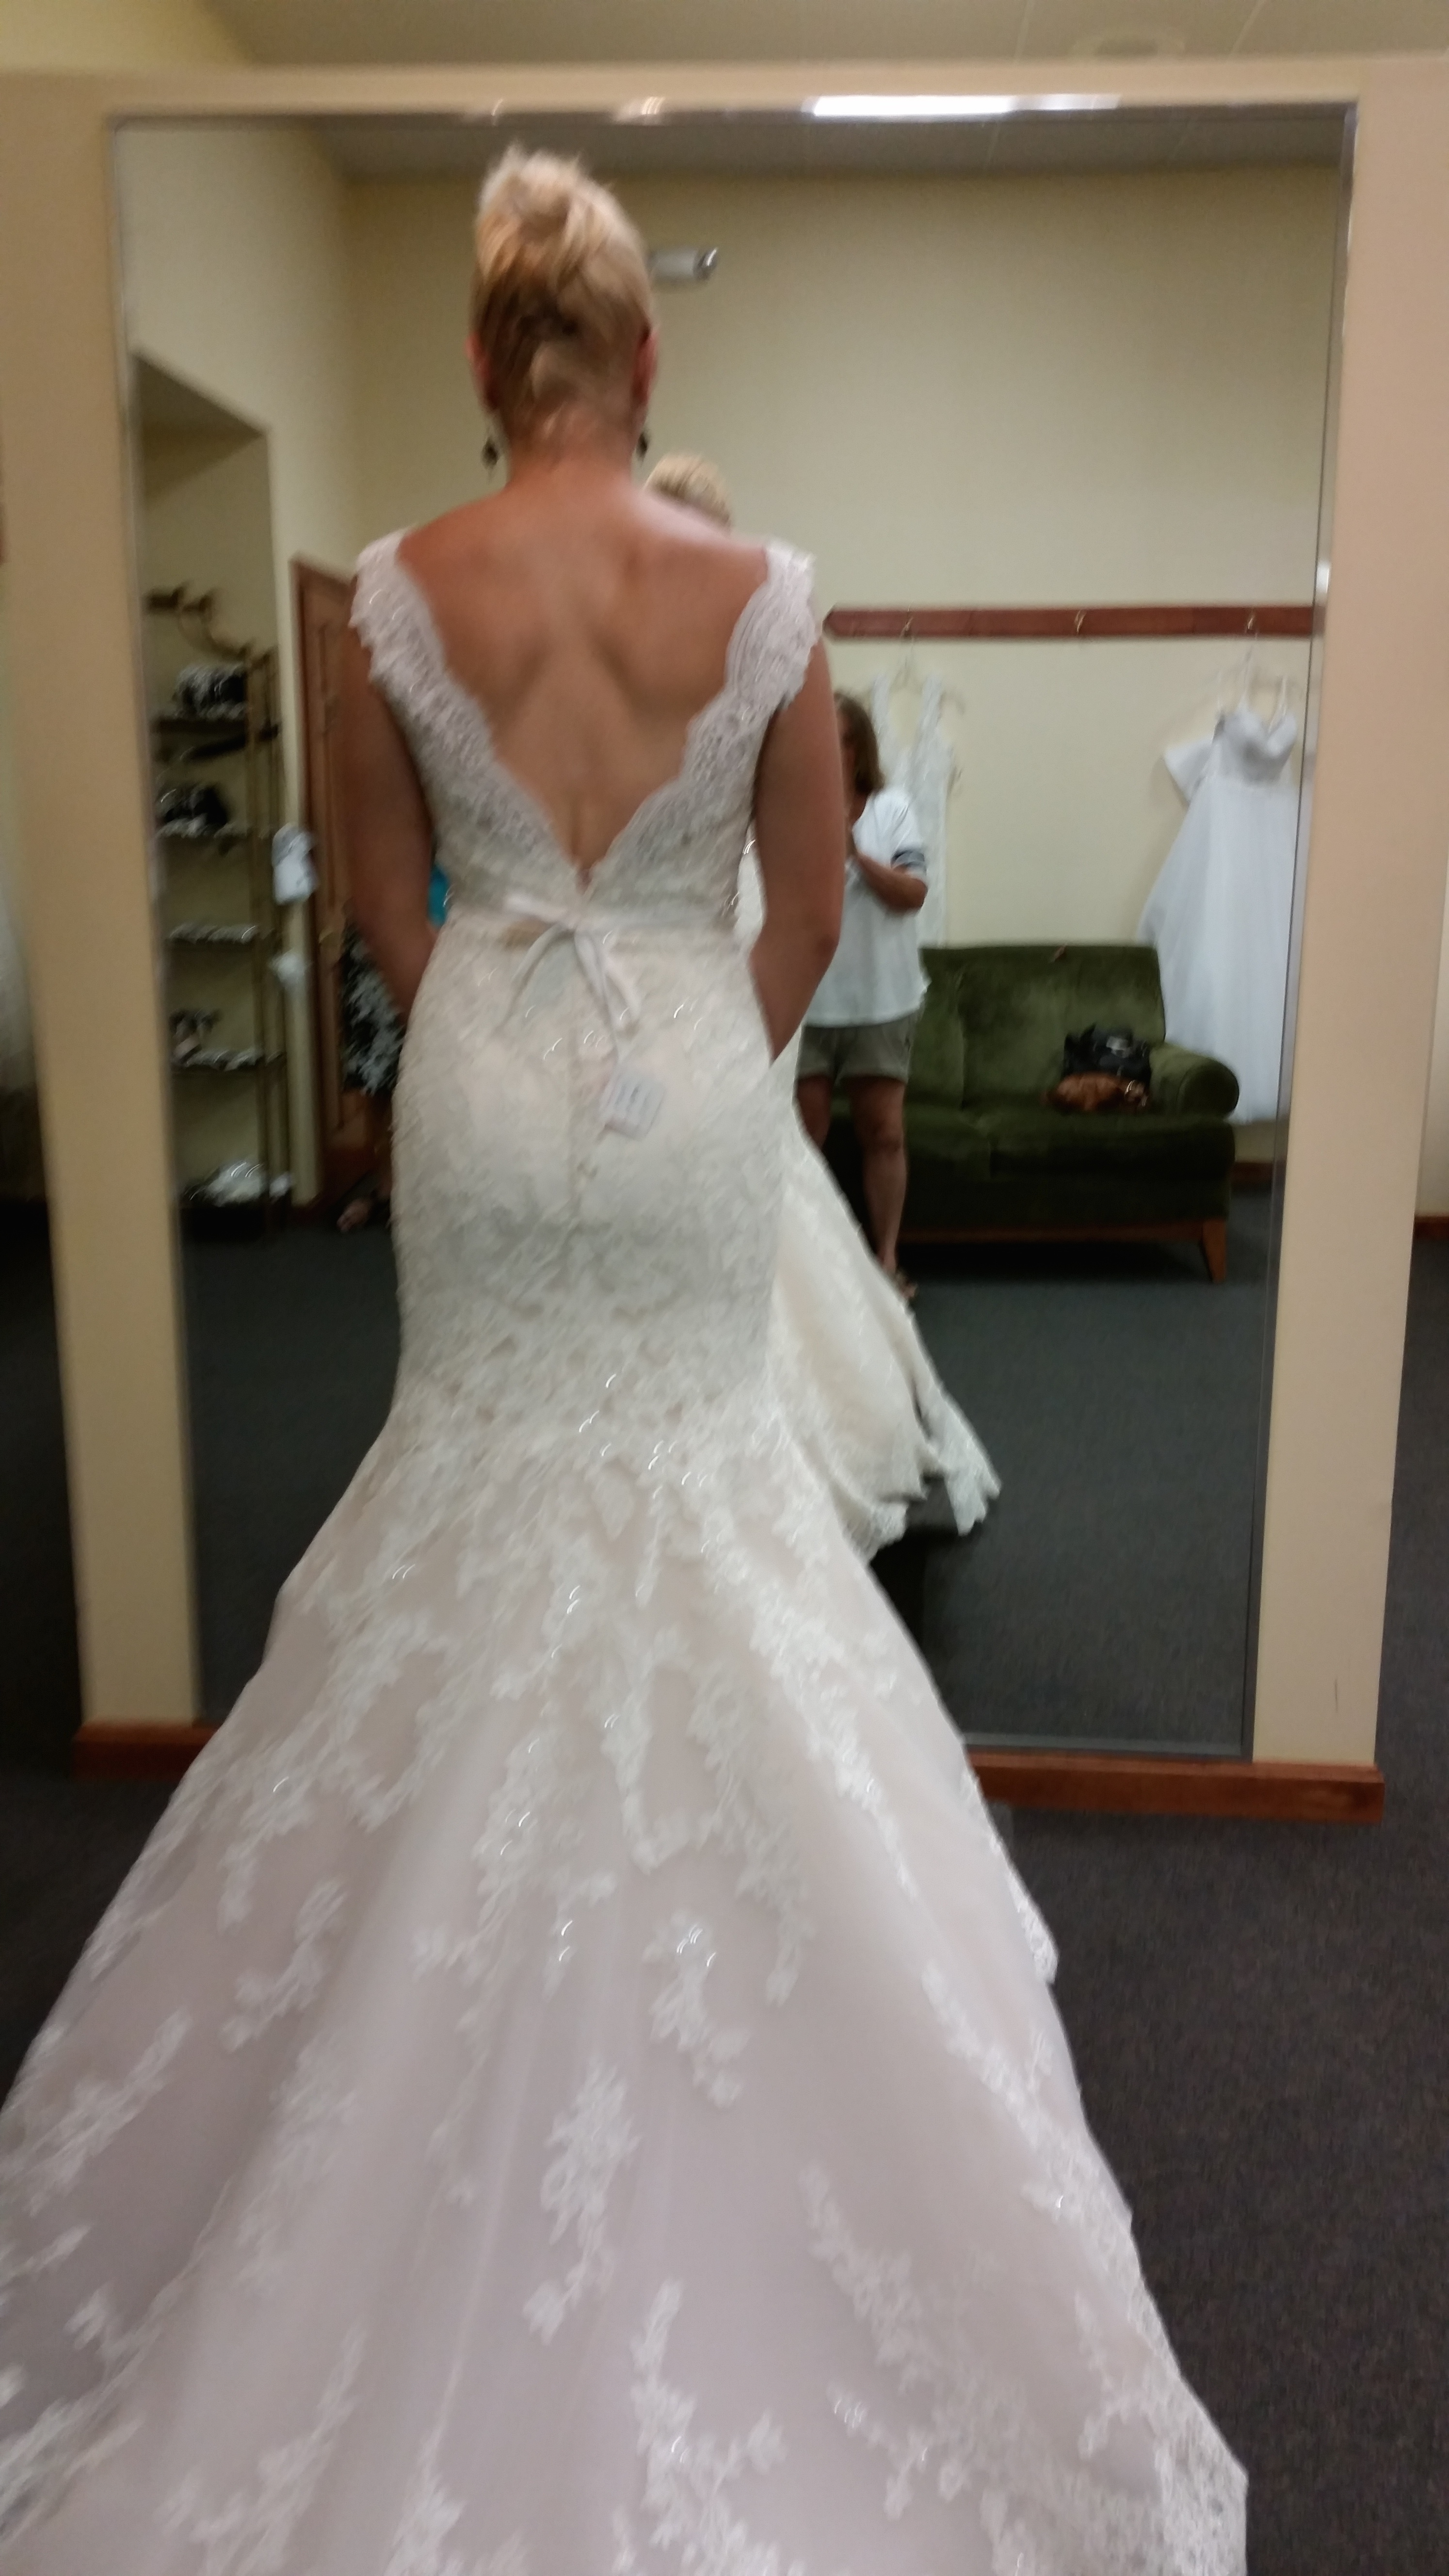 Altering dress backline? Has anyone else done this? — The Knot